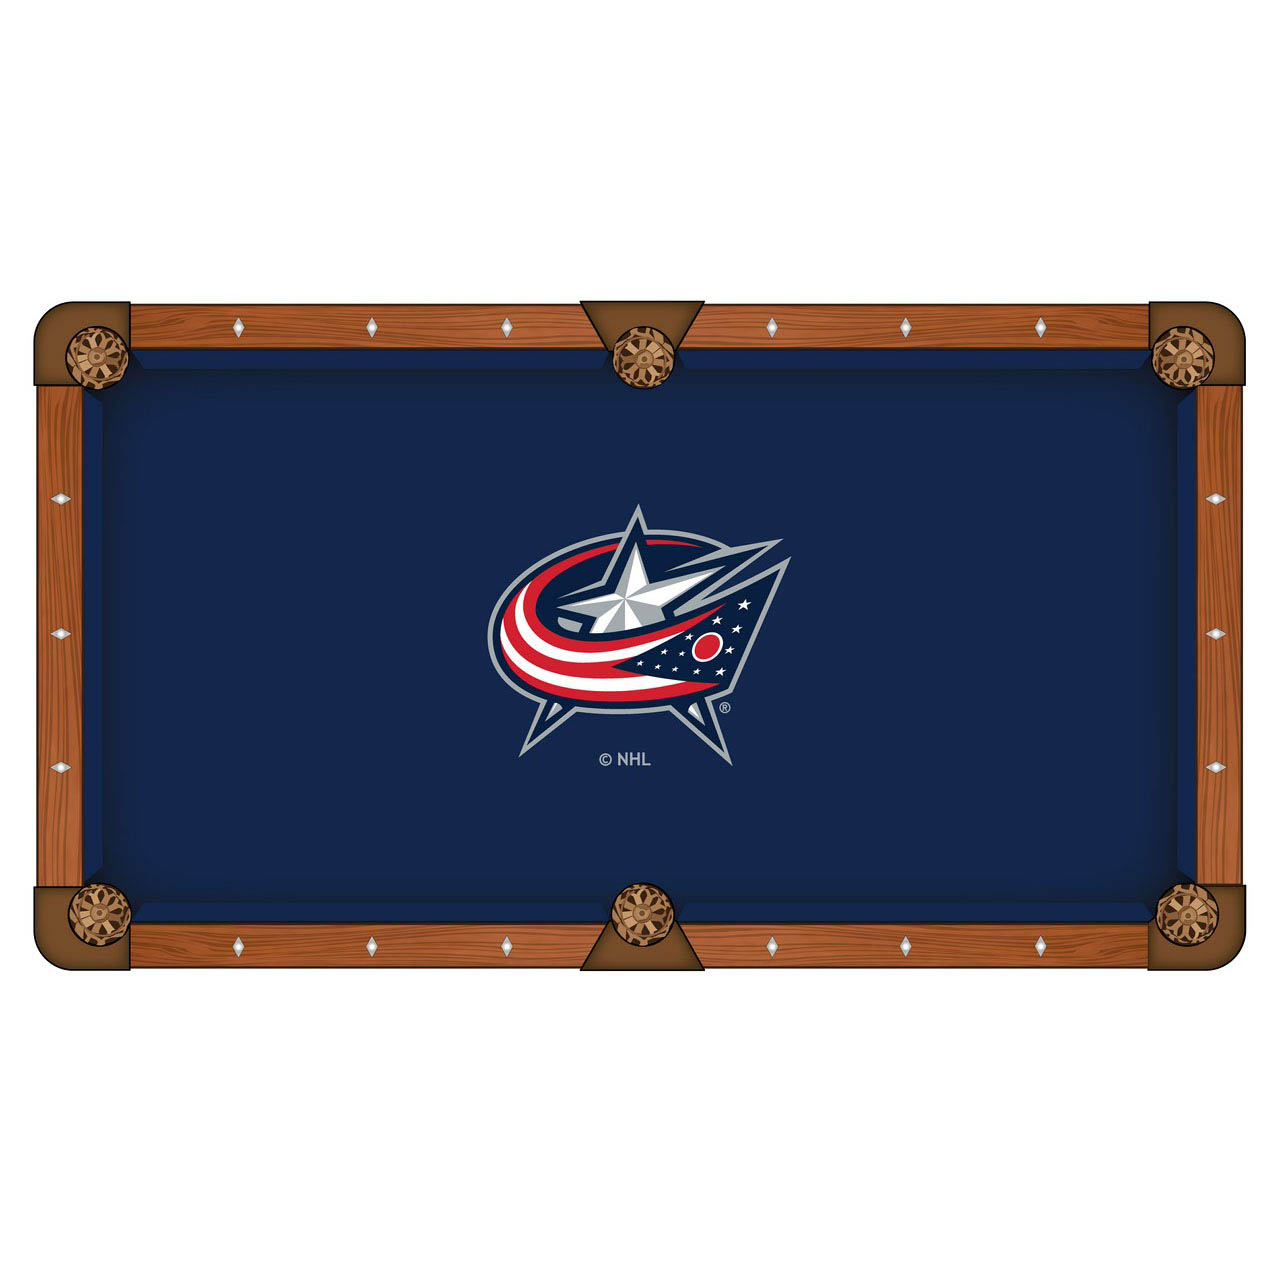 New Columbus Jackets Pool Table Cloth Product Photo